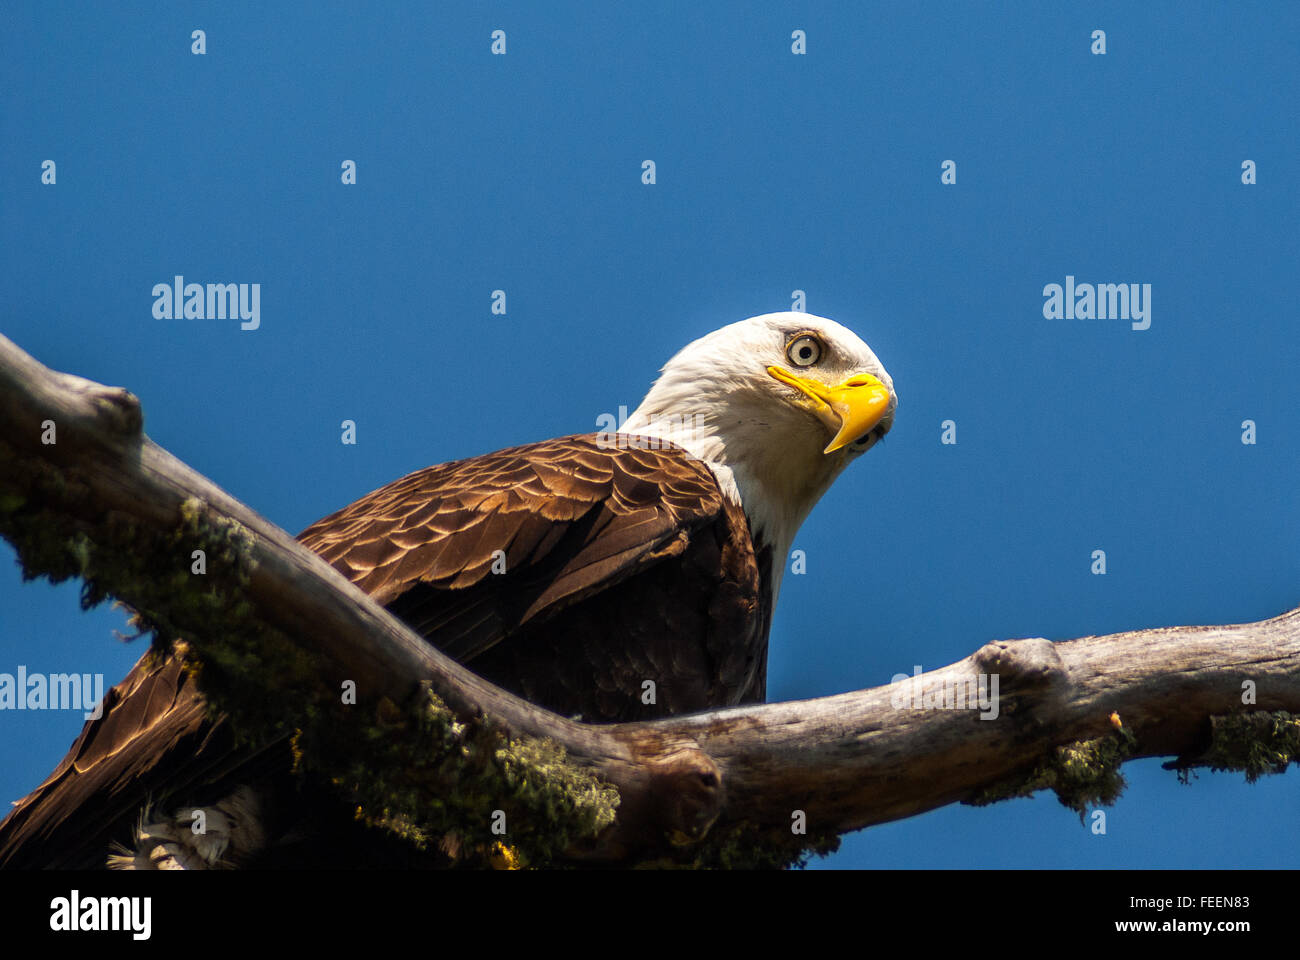 A Bald Eagle looking down. - Stock Image